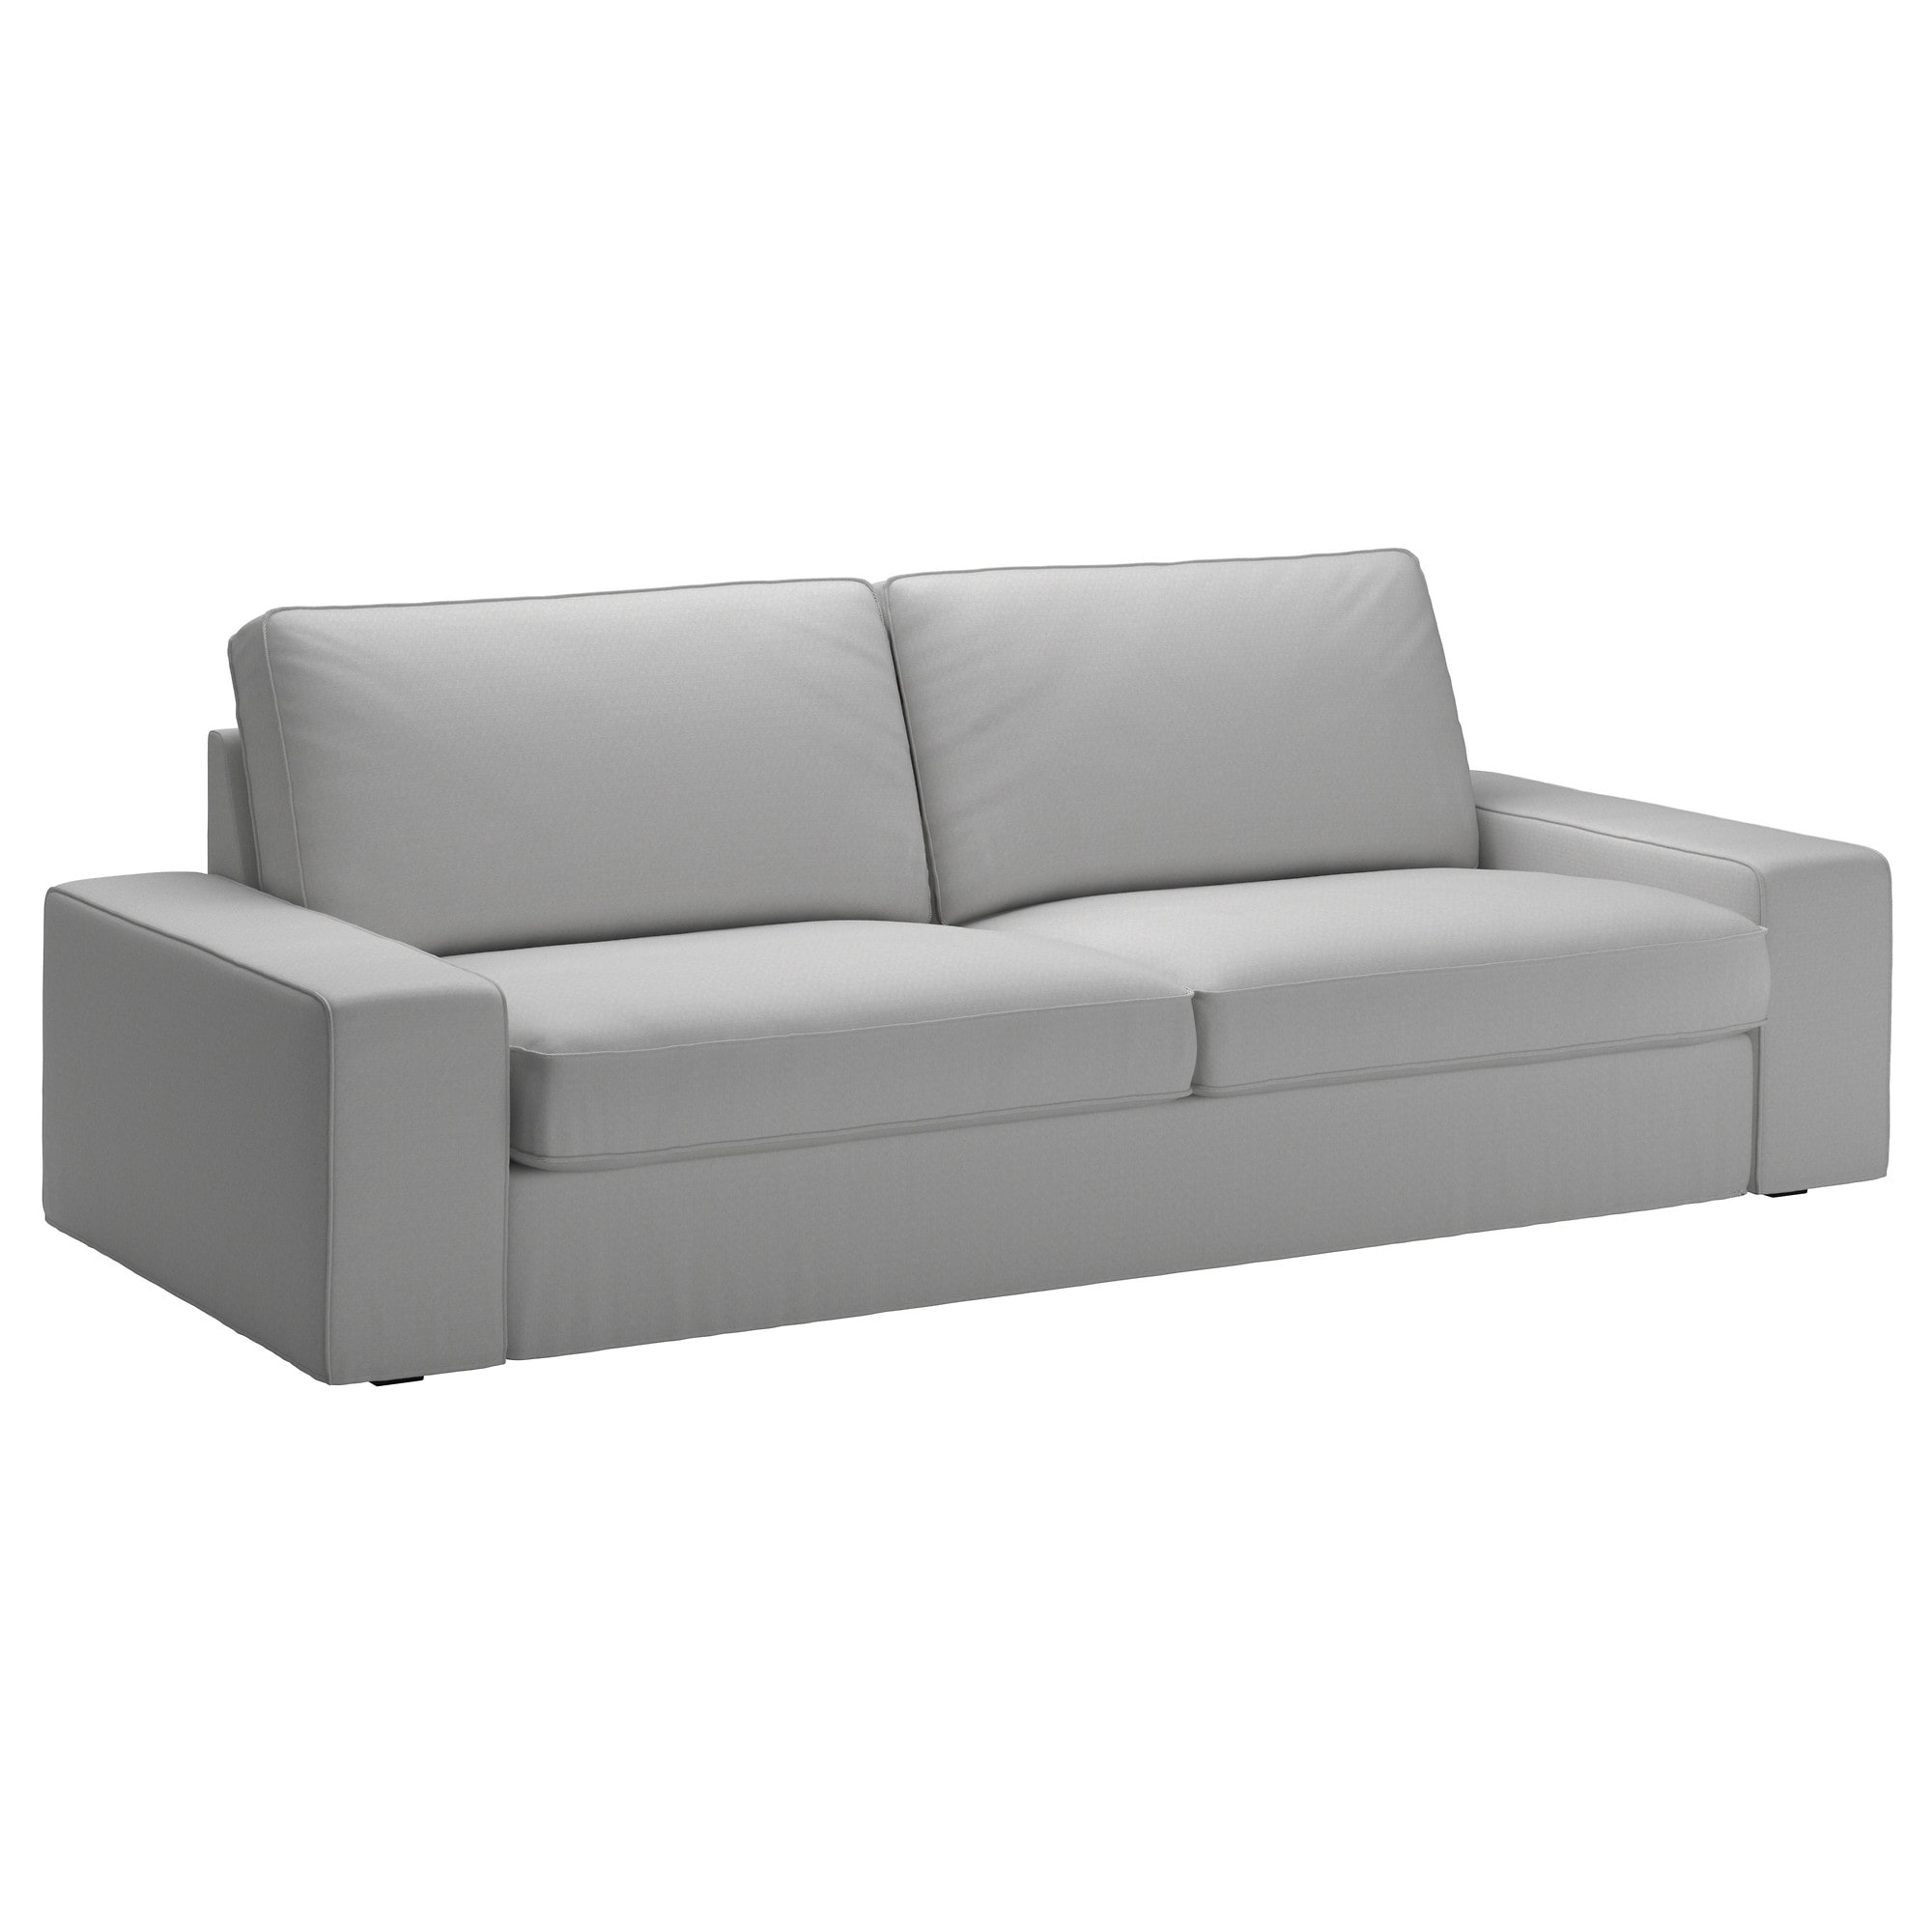 Sofa Relax Ikea Whdr sofà S Y Sillones Pra Online Ikea